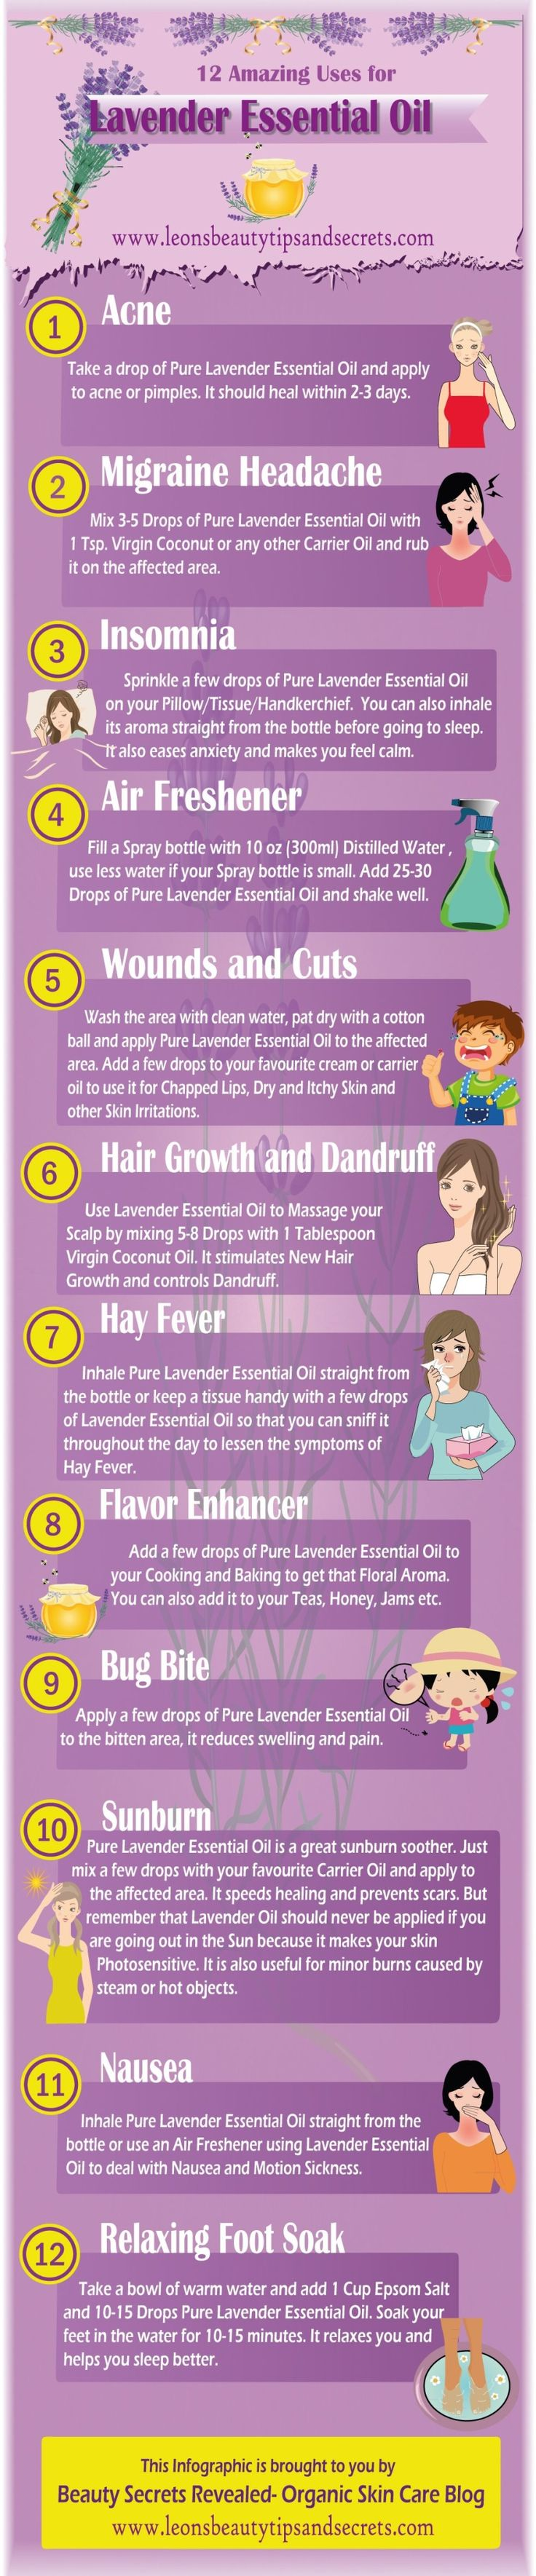 Uses for the Essential Oil Lavender - for more information on essential oils www.facebook.com/yleotks or www.facebook.com/groups/1441031559467944